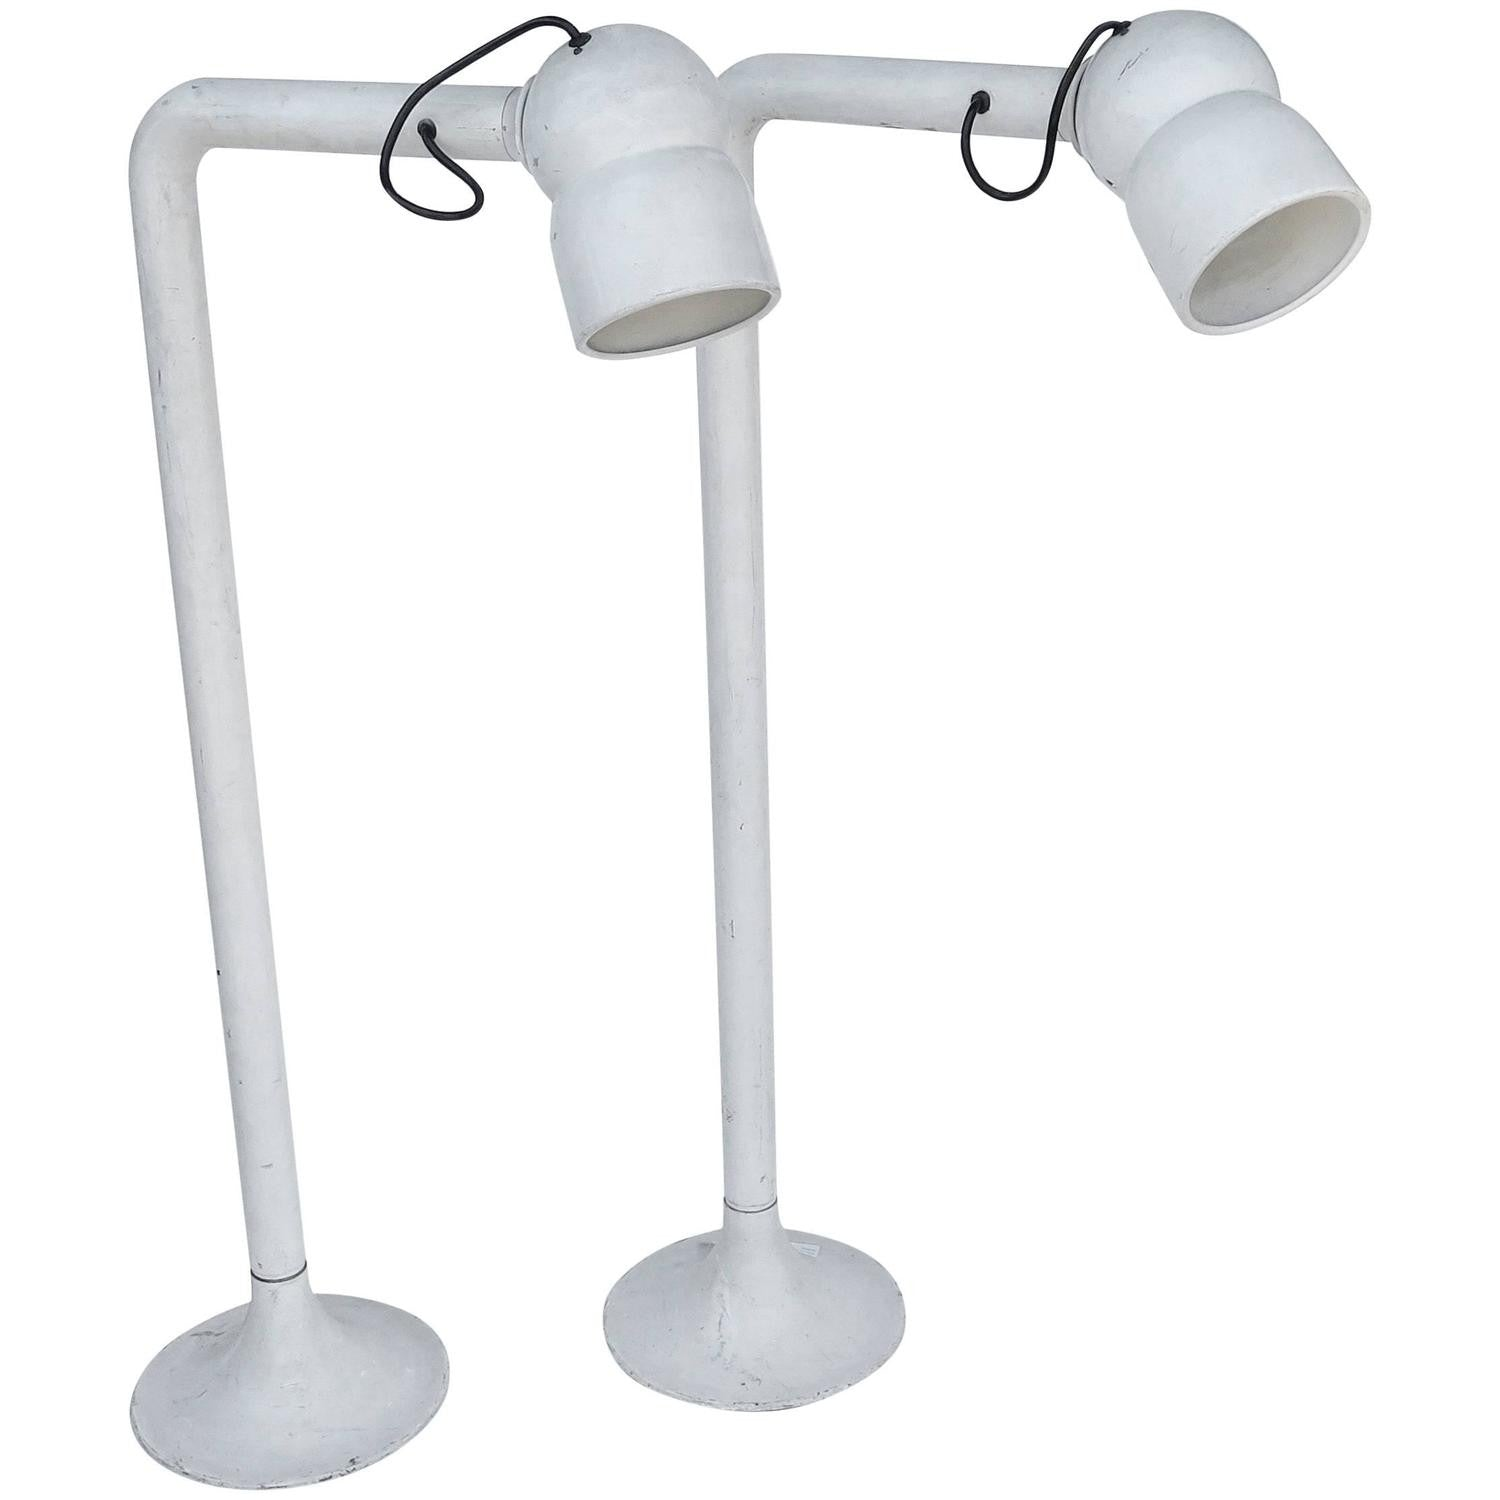 modern table lighting. Pair Of Modern Italian Industrial Floor Or Table Lights Lighting